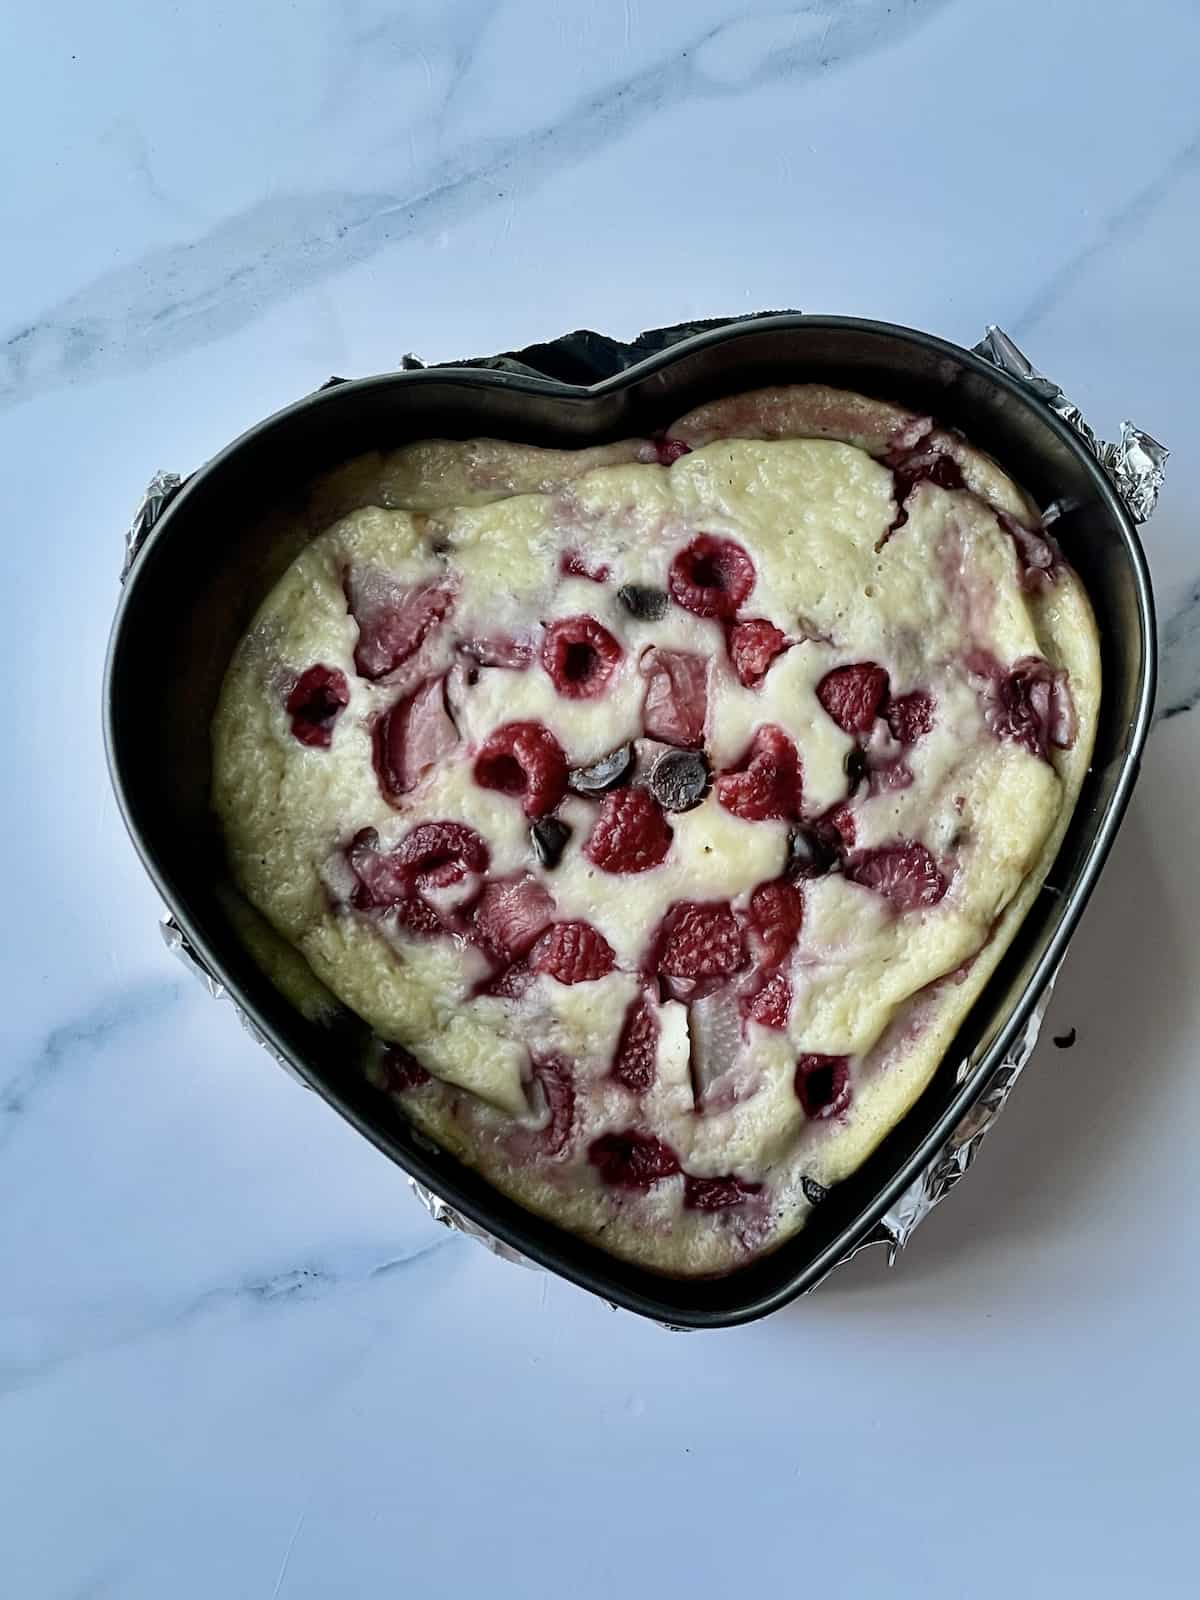 pressure cooked pancake in a heart spring form pan topped with fruit and chocolate